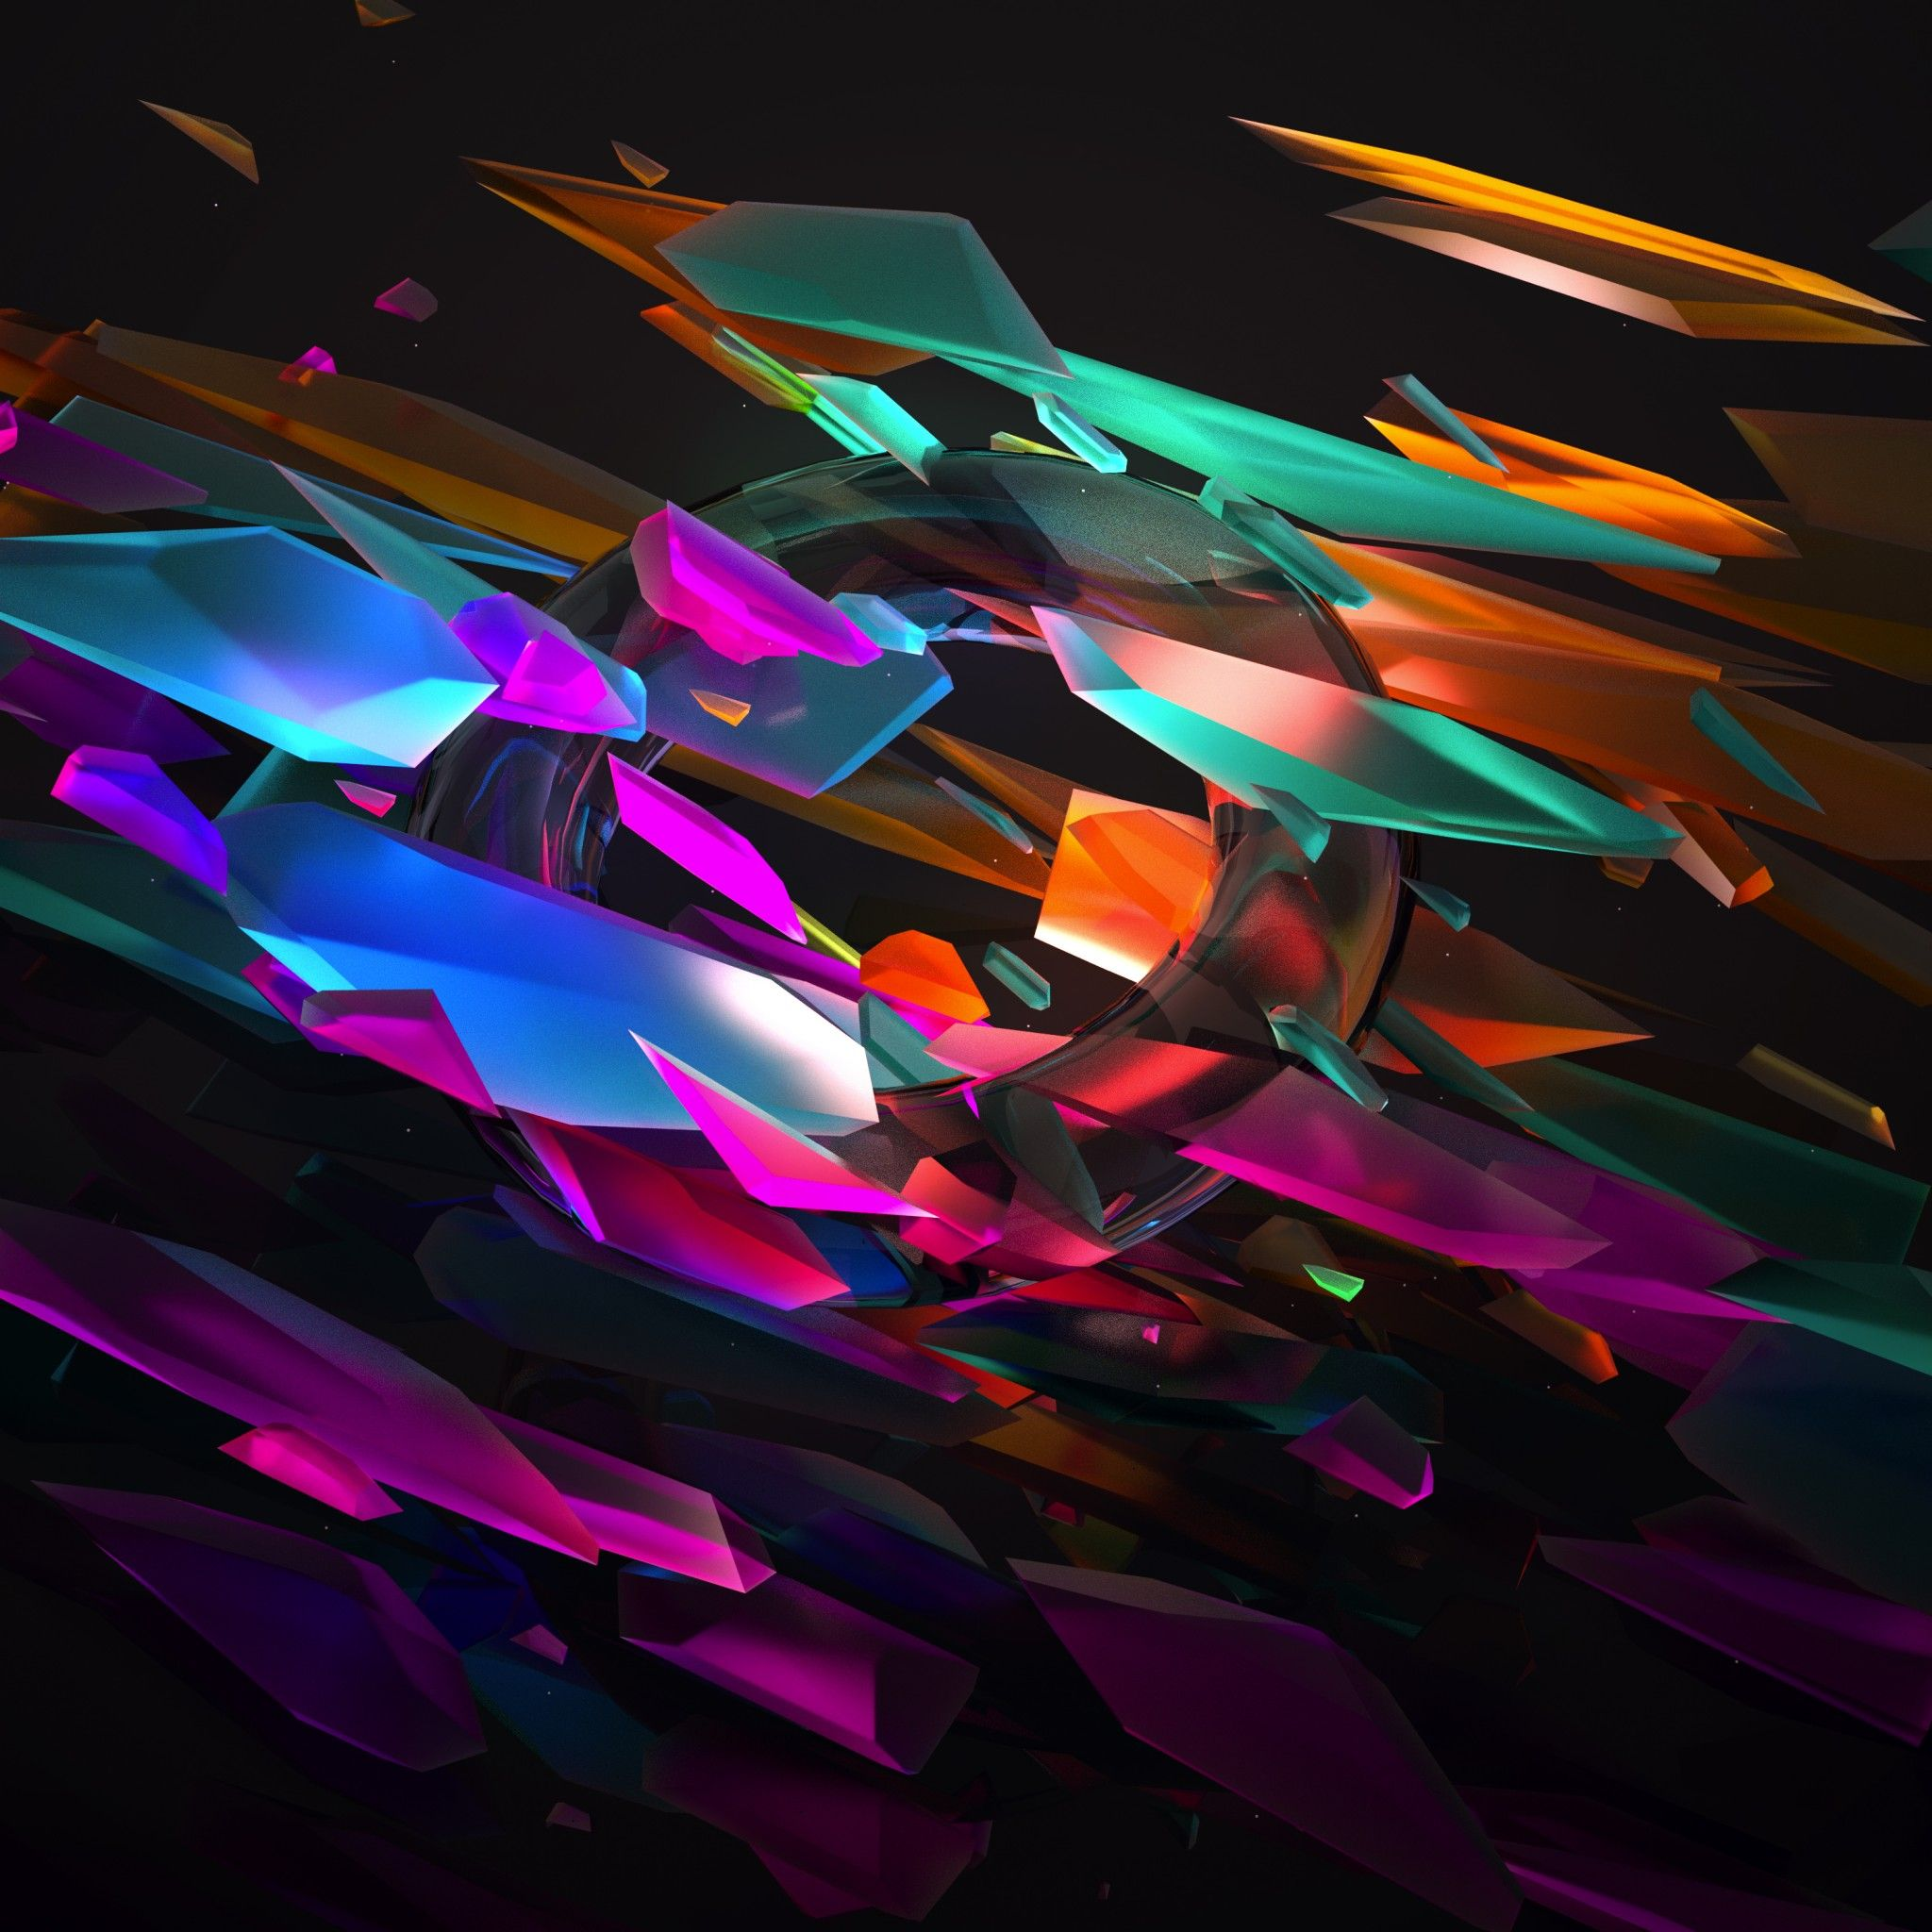 Gamut Tap To See More Cool 3d Abstract Art Wallpapers By Justin